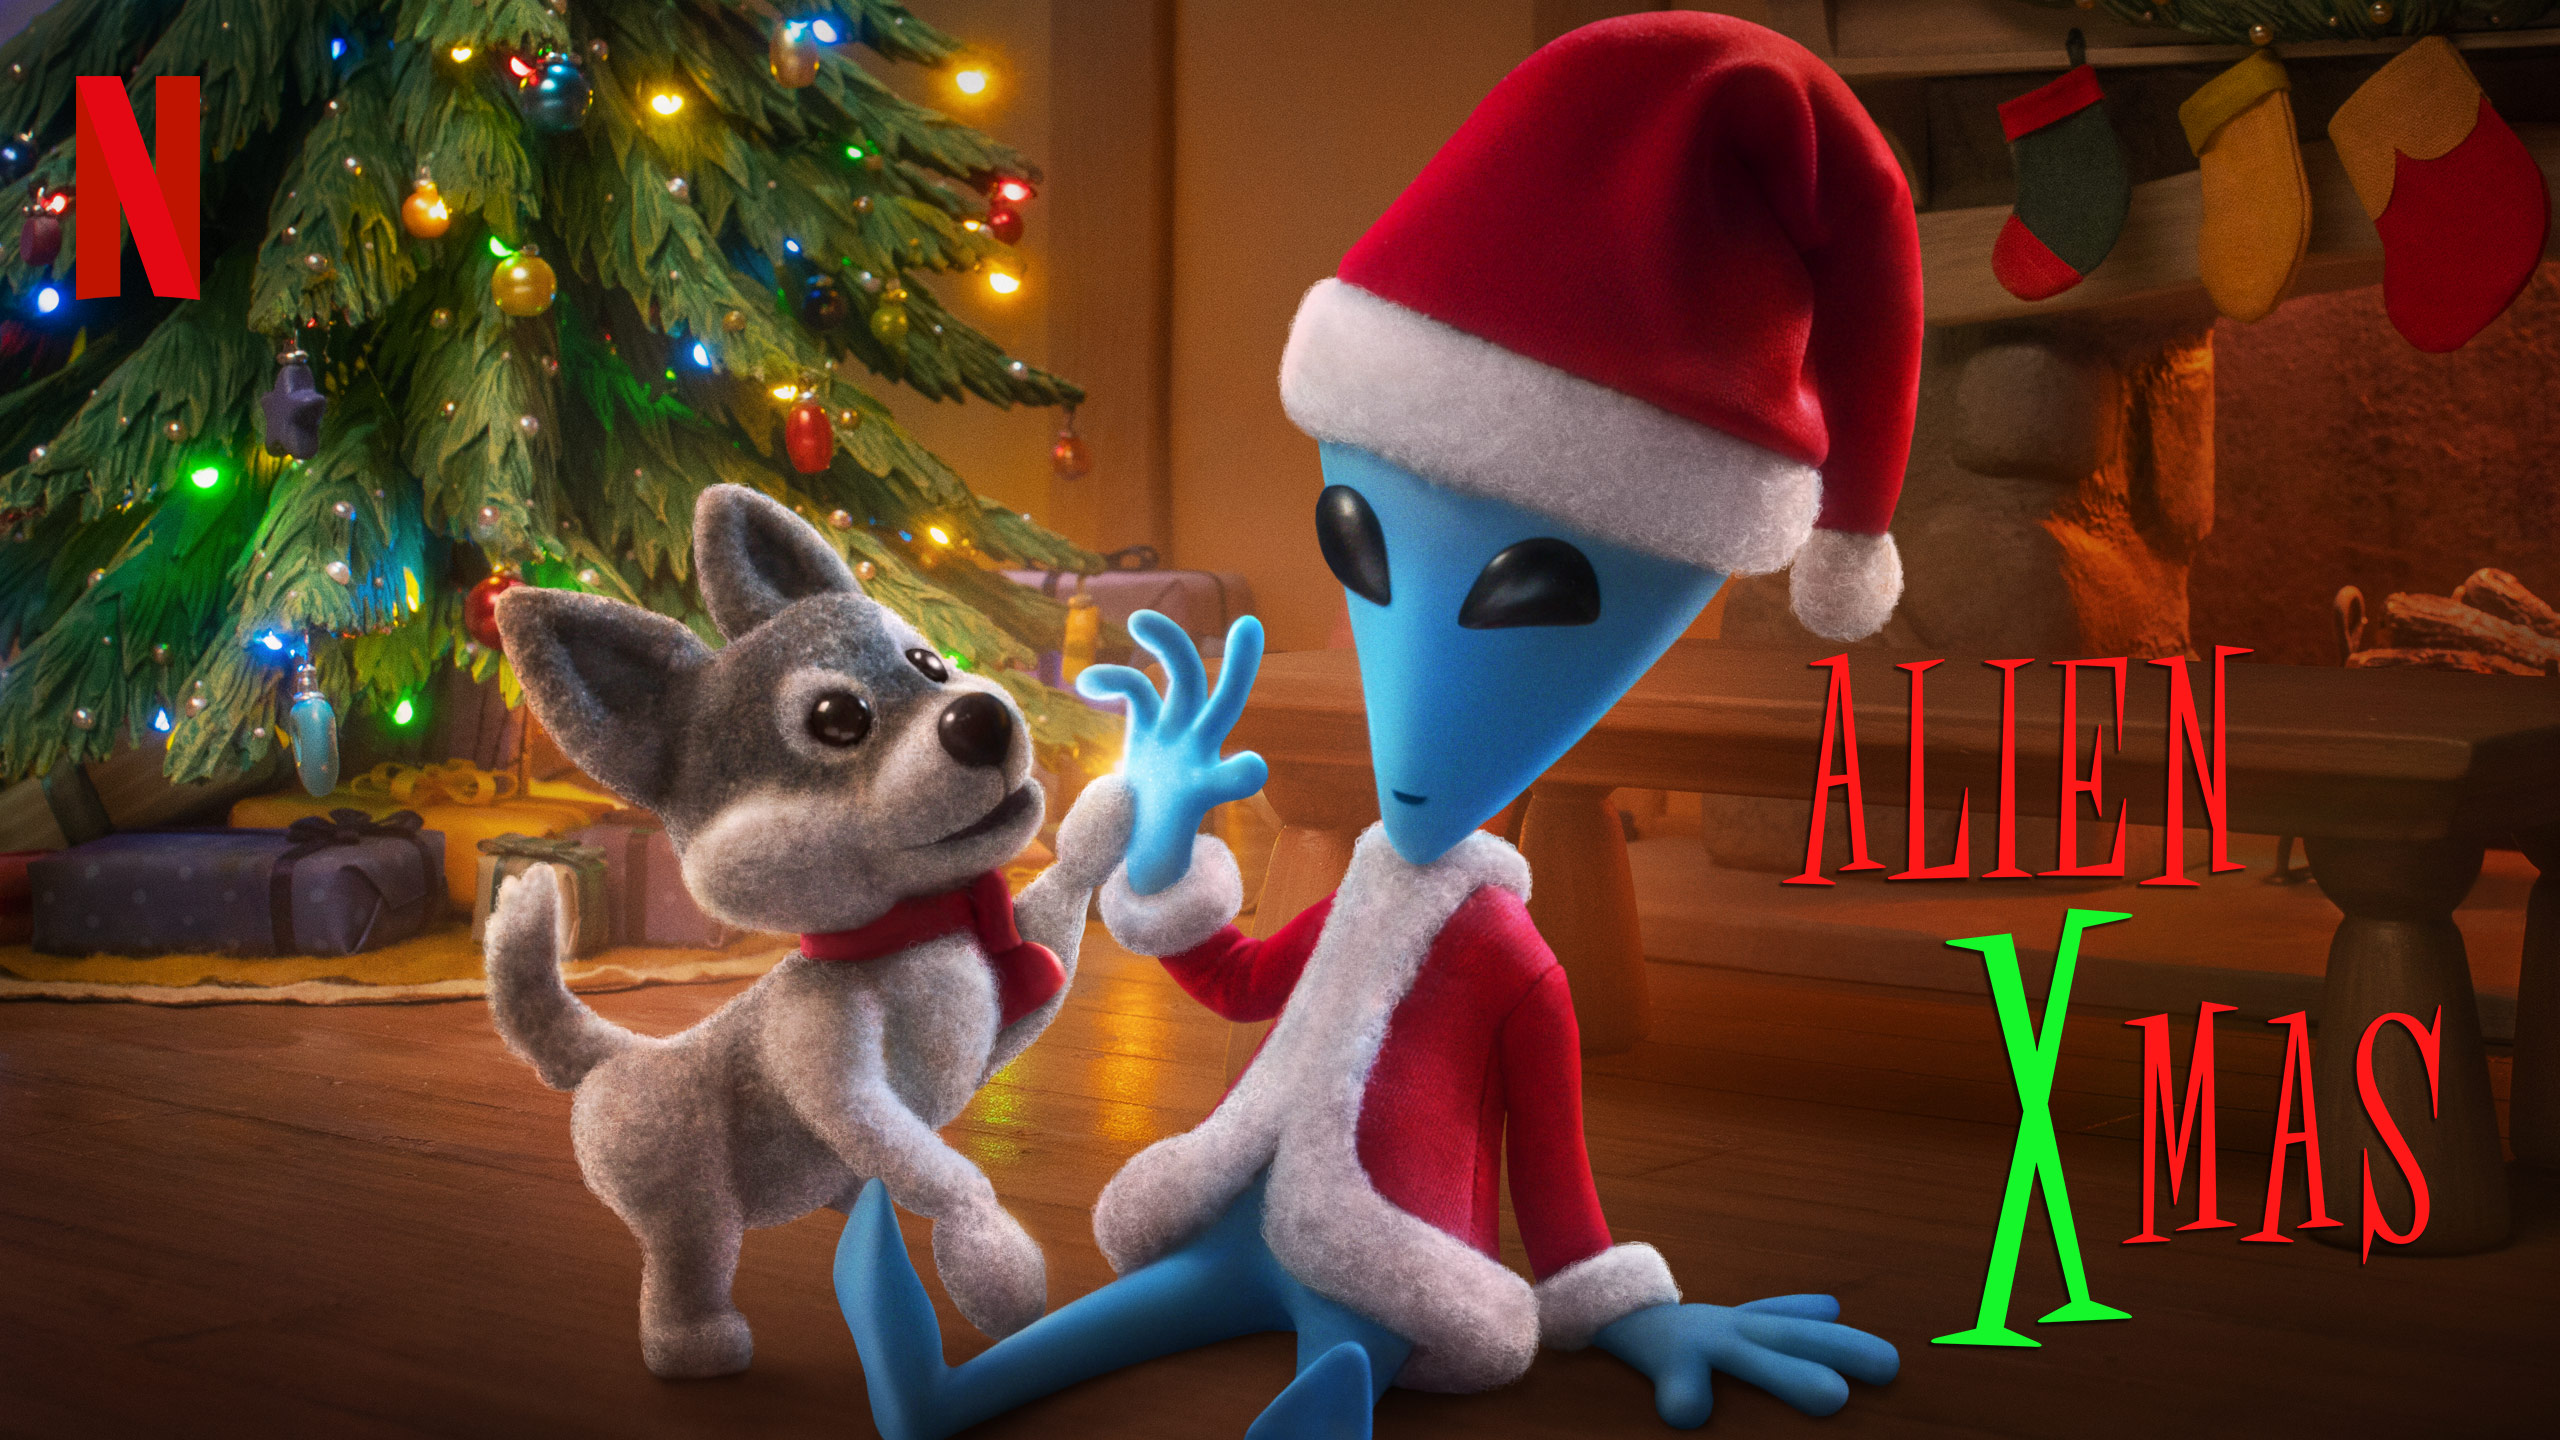 Alien XMas | Netflix DA Concept, Finishing & Illustration